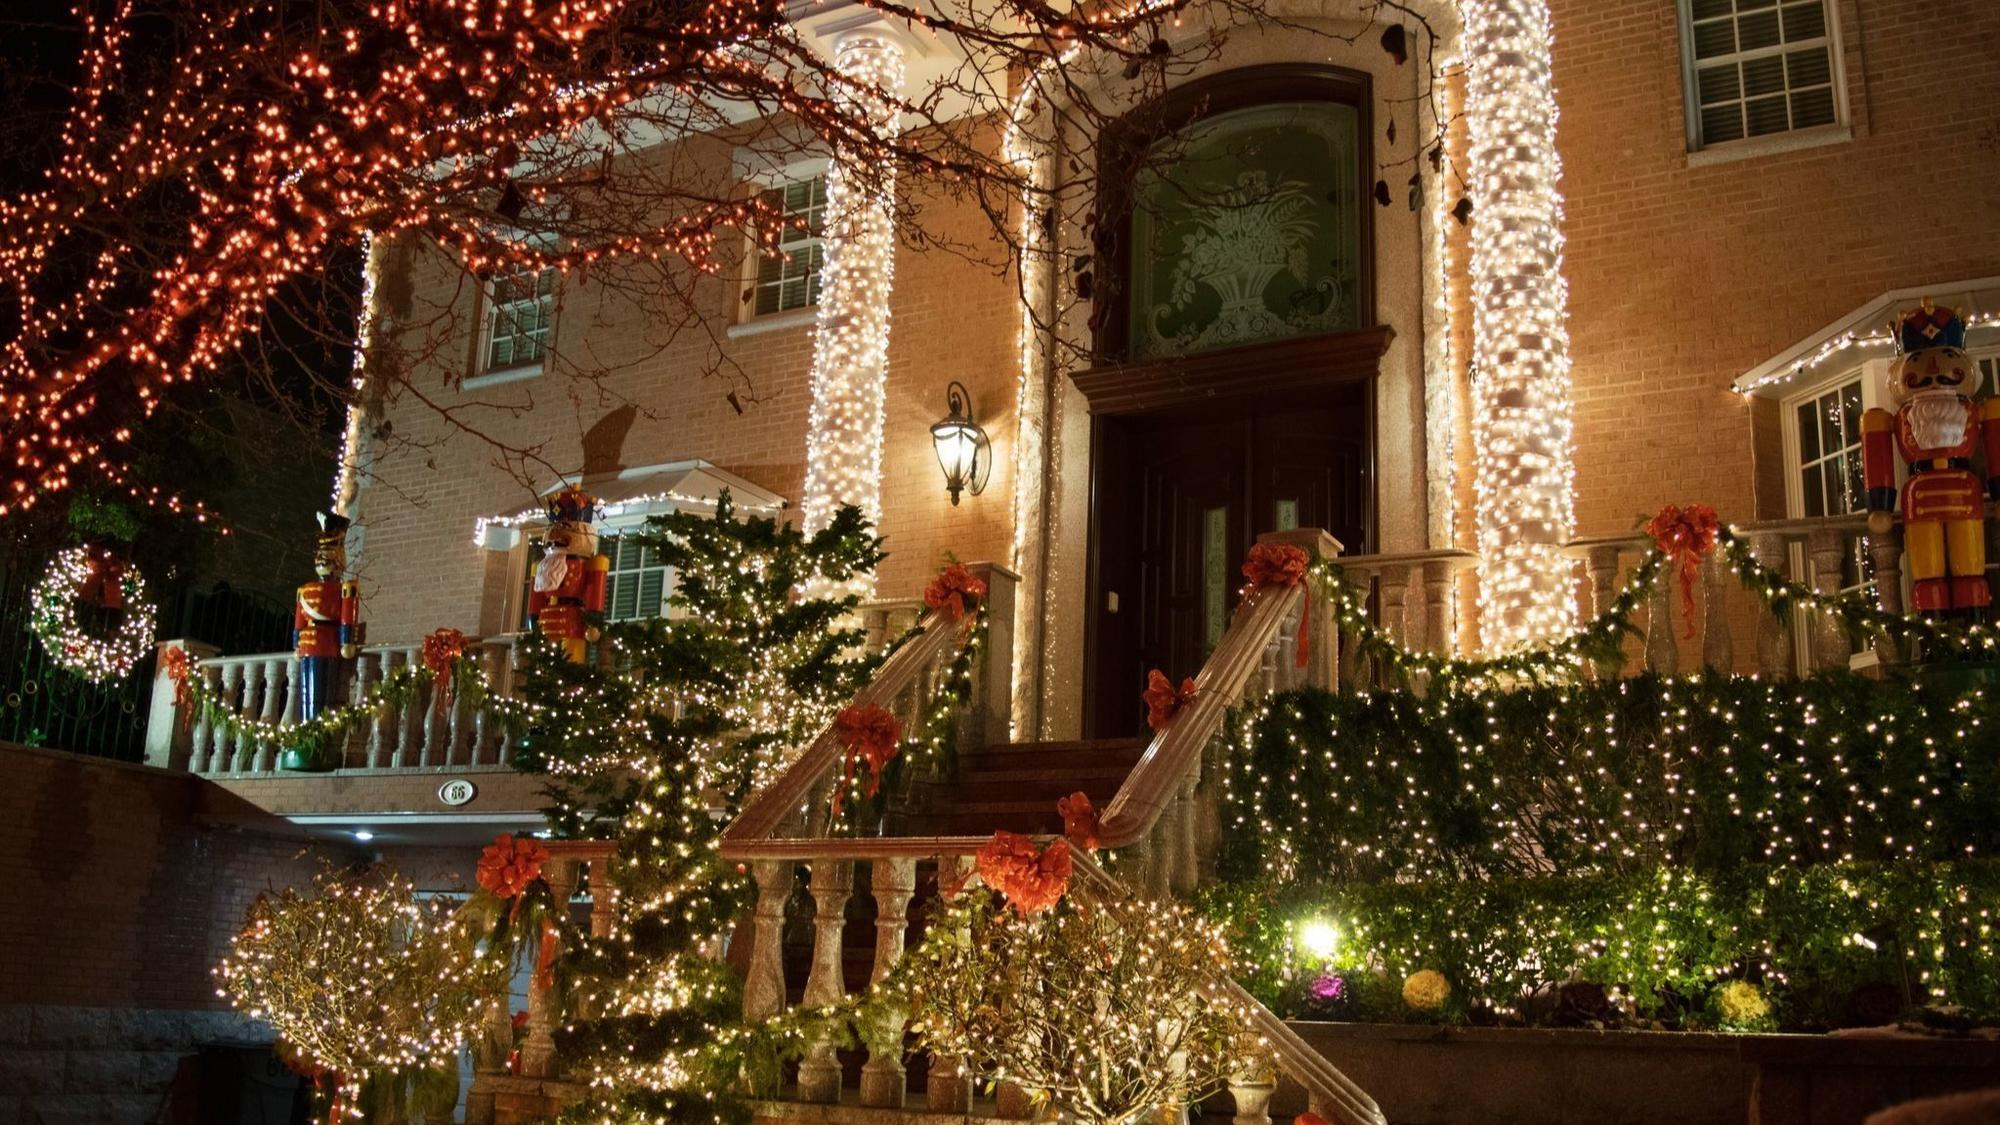 Lights, Music And Markets: New York City Over The Holidays ...